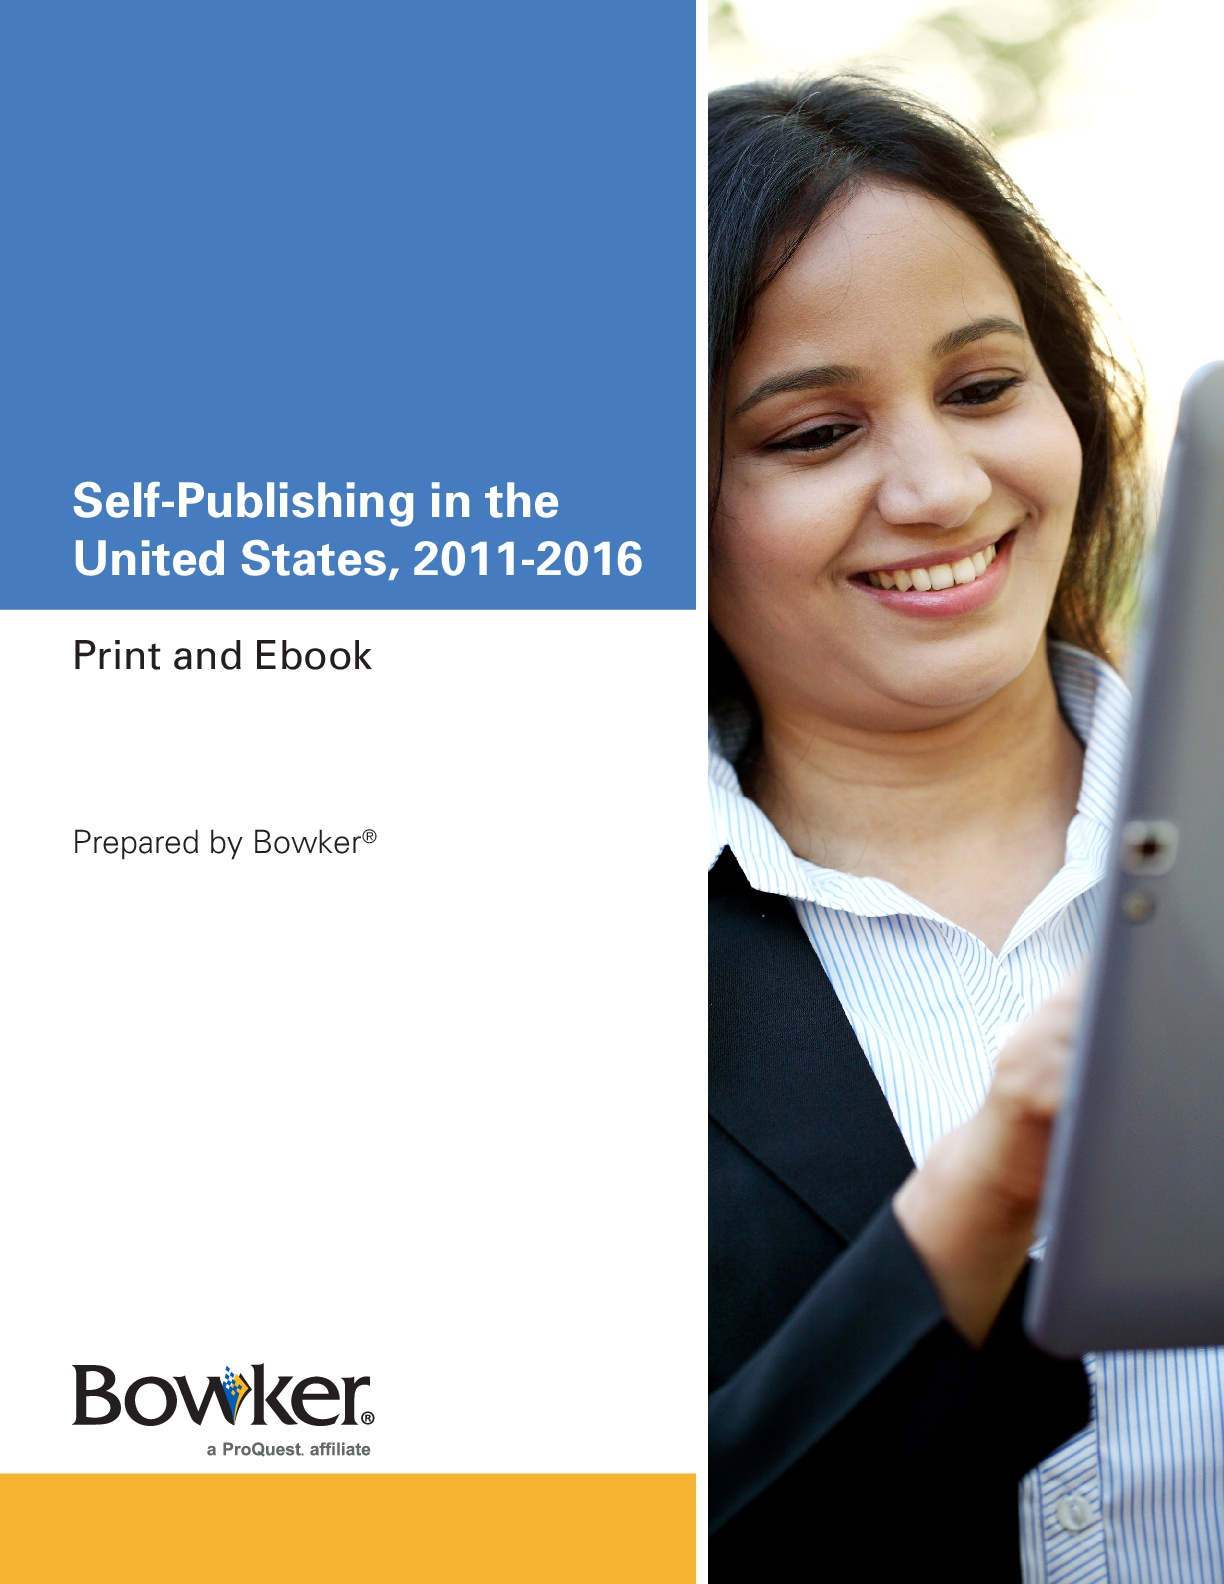 Self-Publishing in the United States, 2011-2016. Print and Ebook